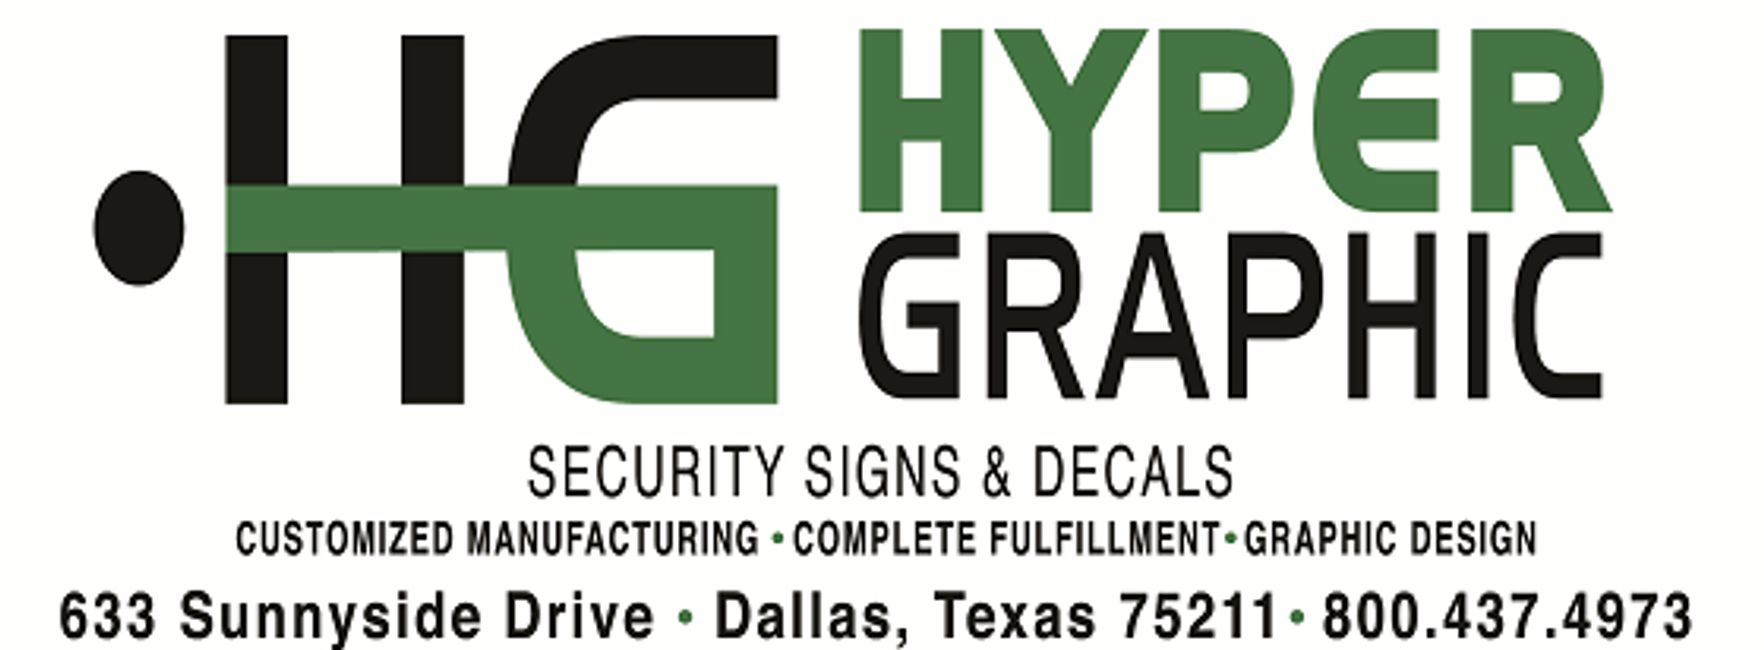 HyperGraphic offers Security Signs and Decals.